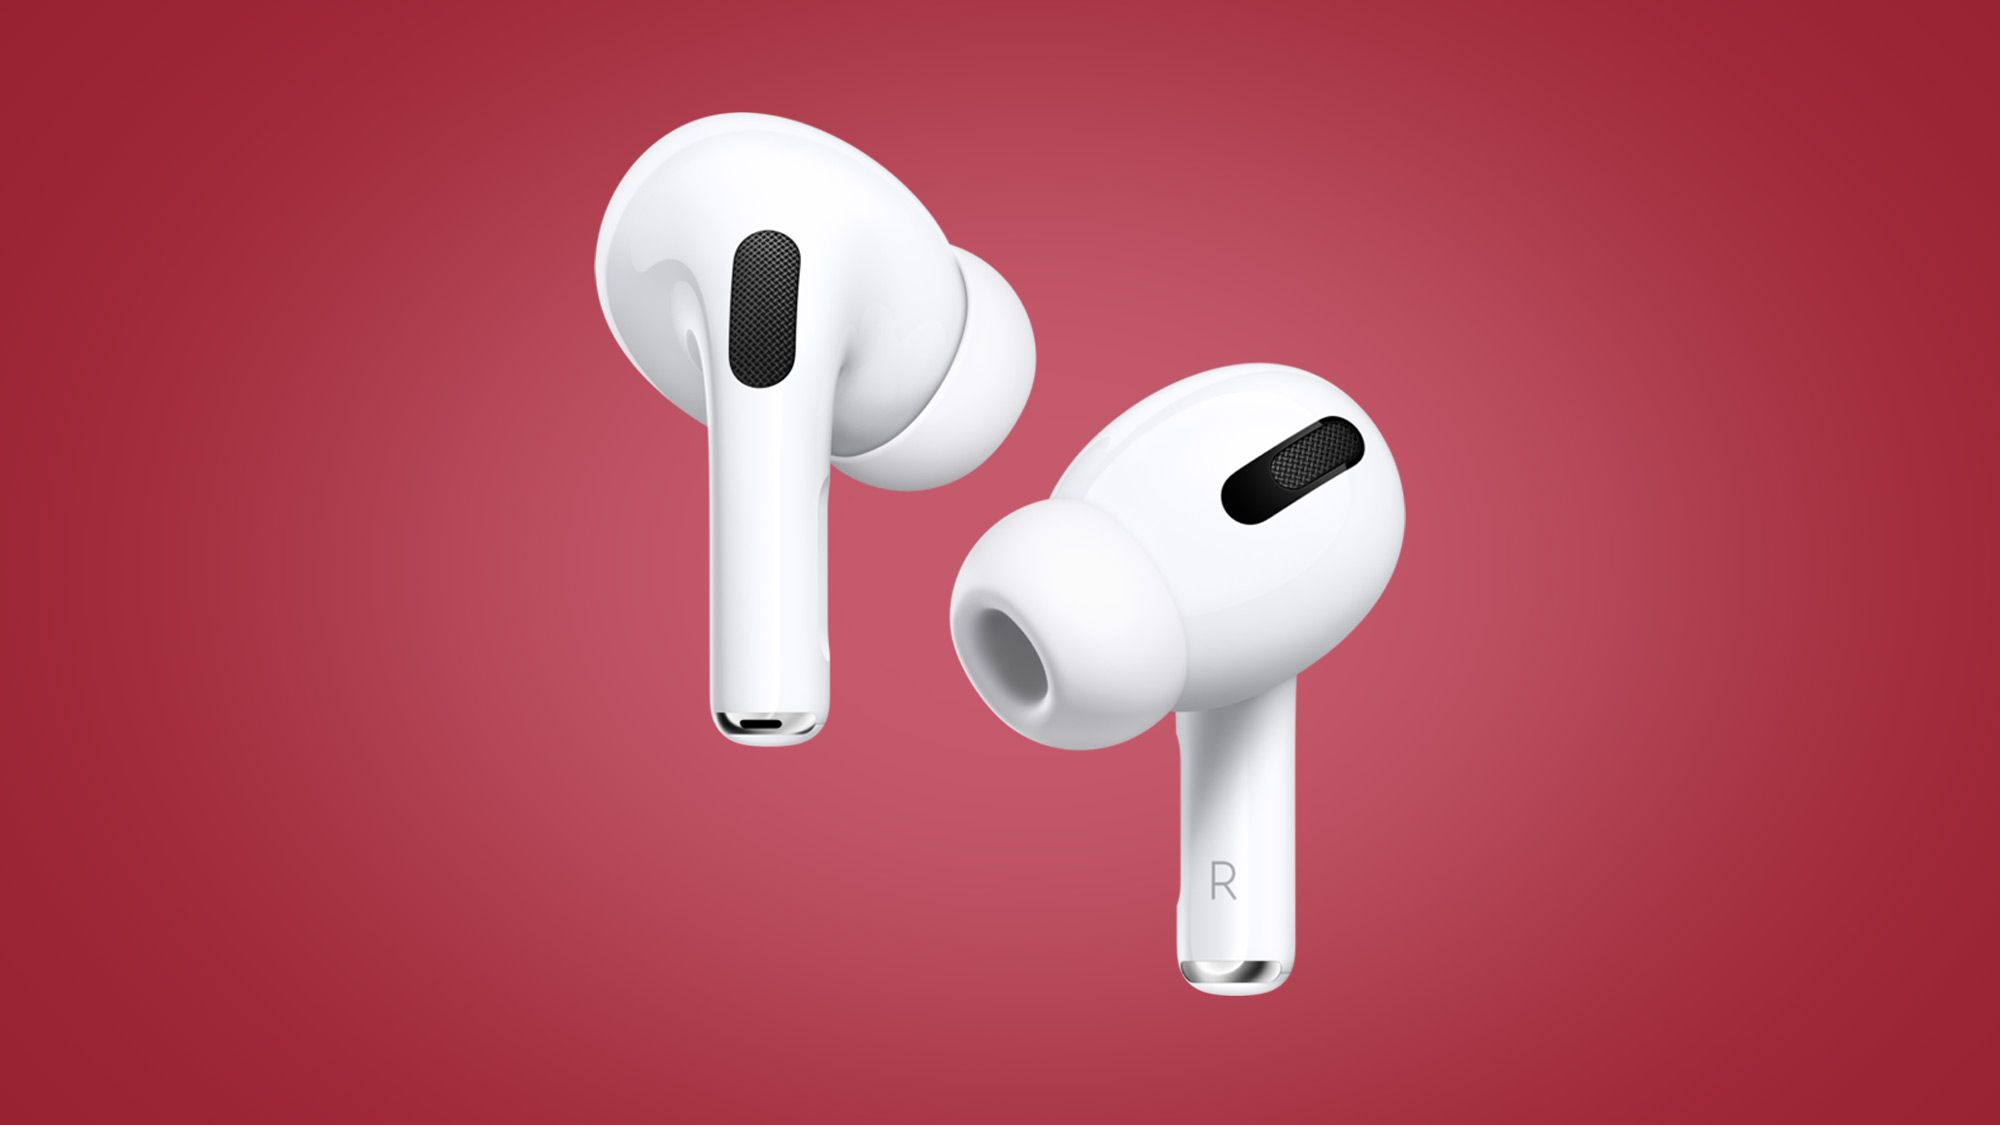 Airpods Pro Get Their First Discount Before Black Friday Despite Selling Out At Most Stores Airpods Pro Black Friday Tech News